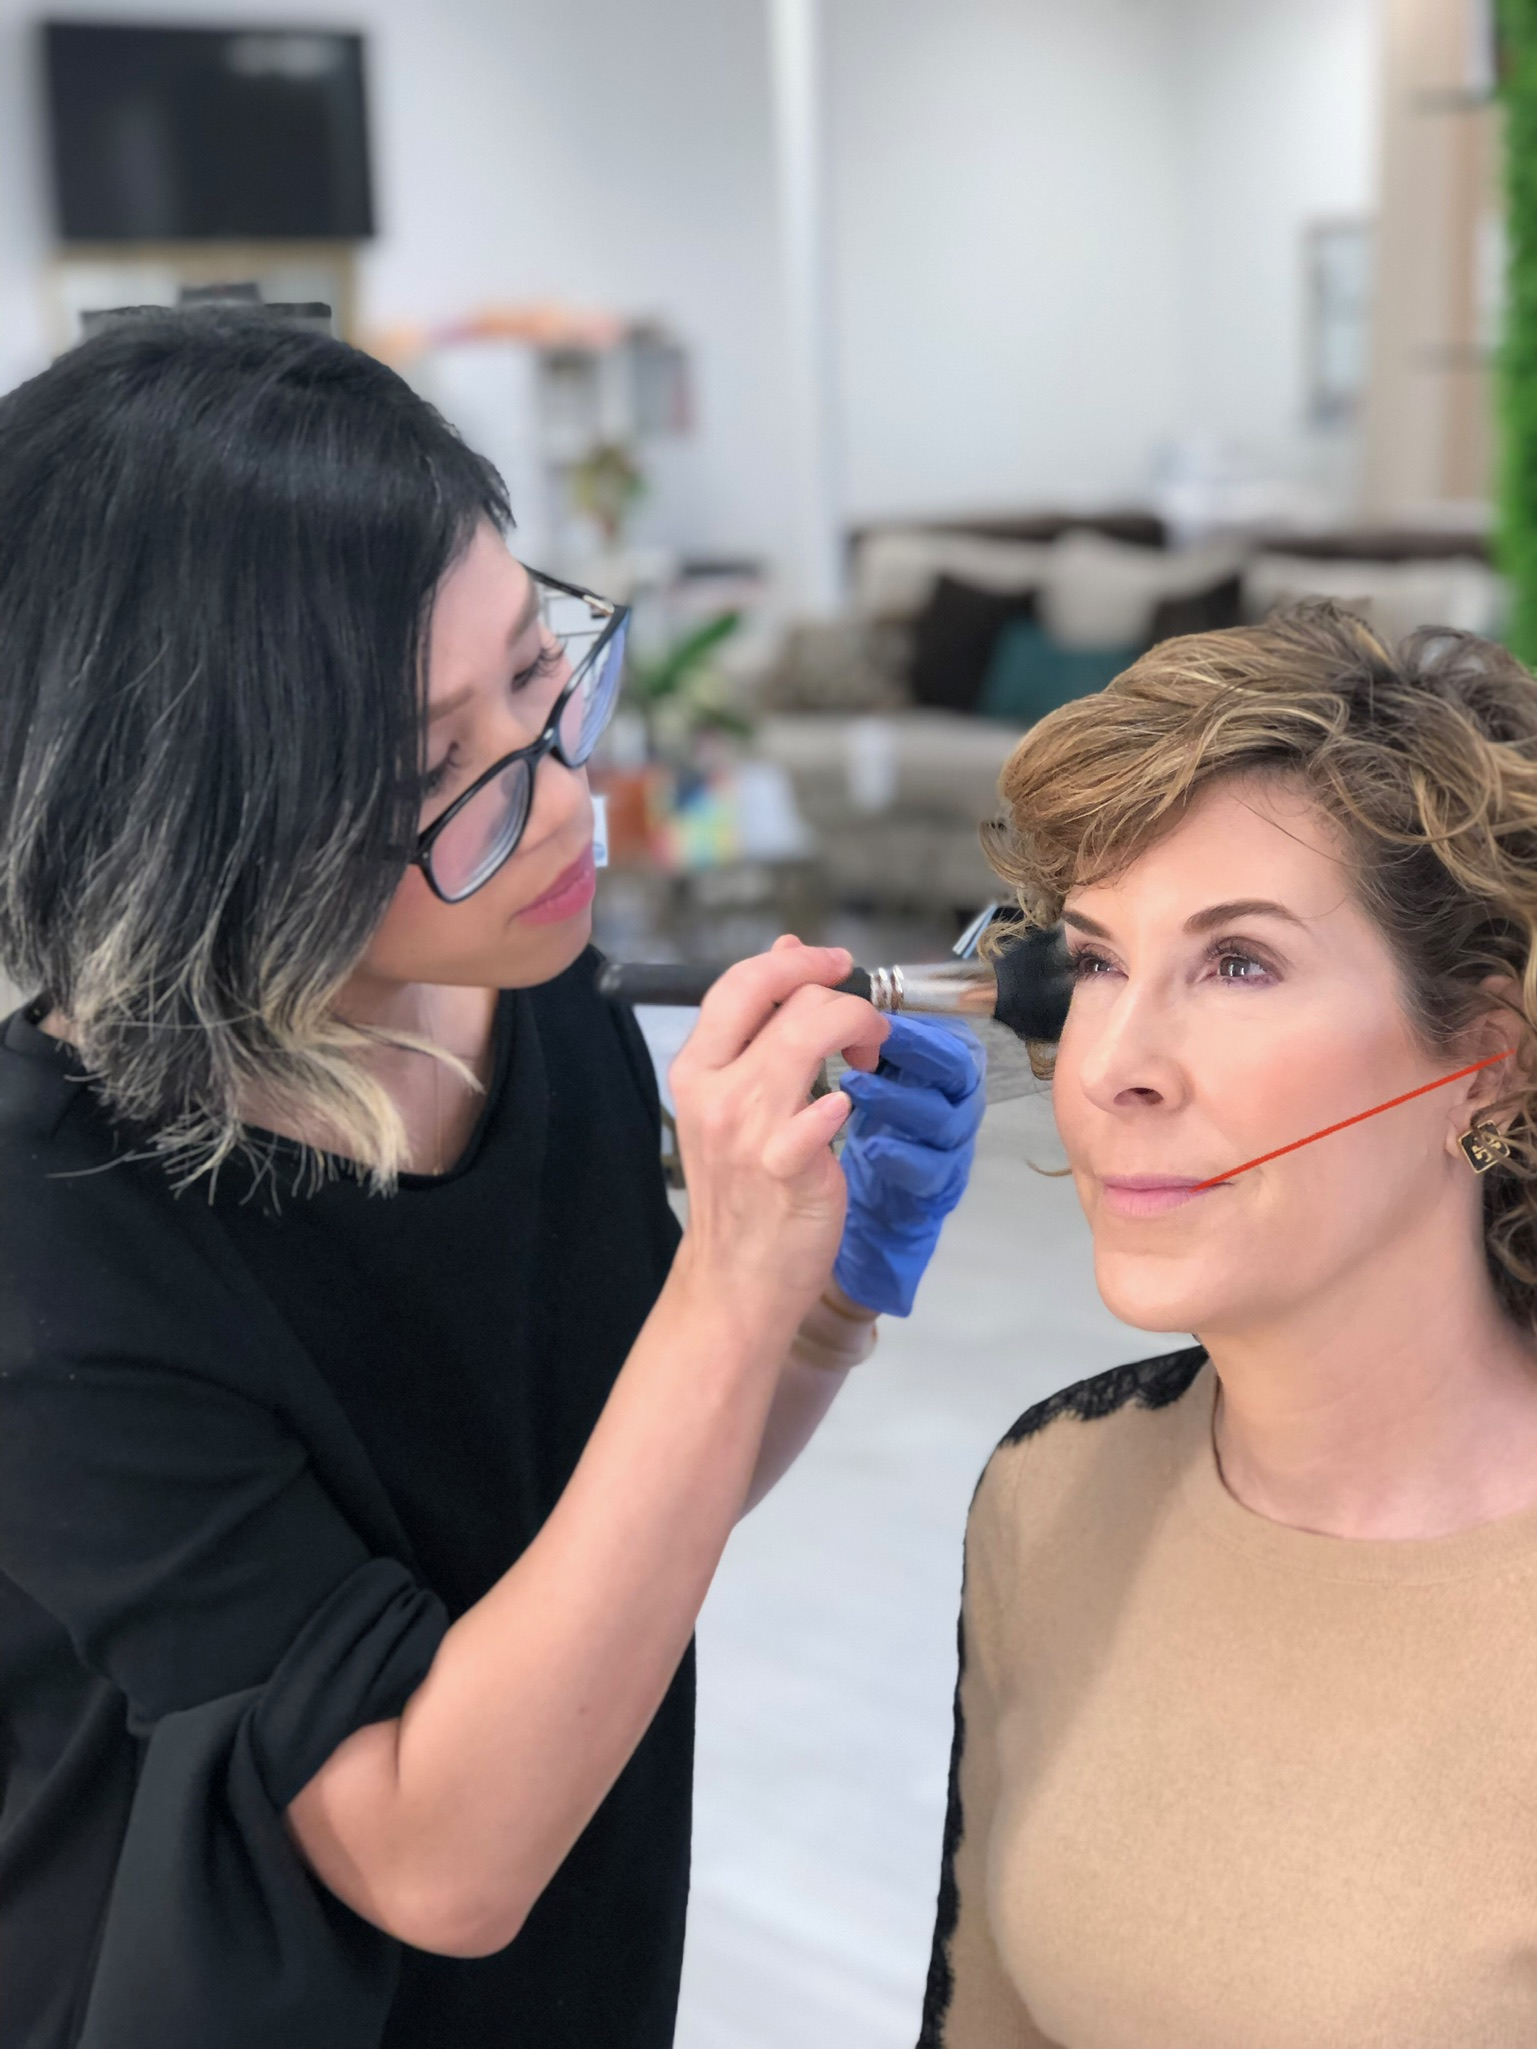 woman getting makeup done with red line on her face to show where to contour cheekbones